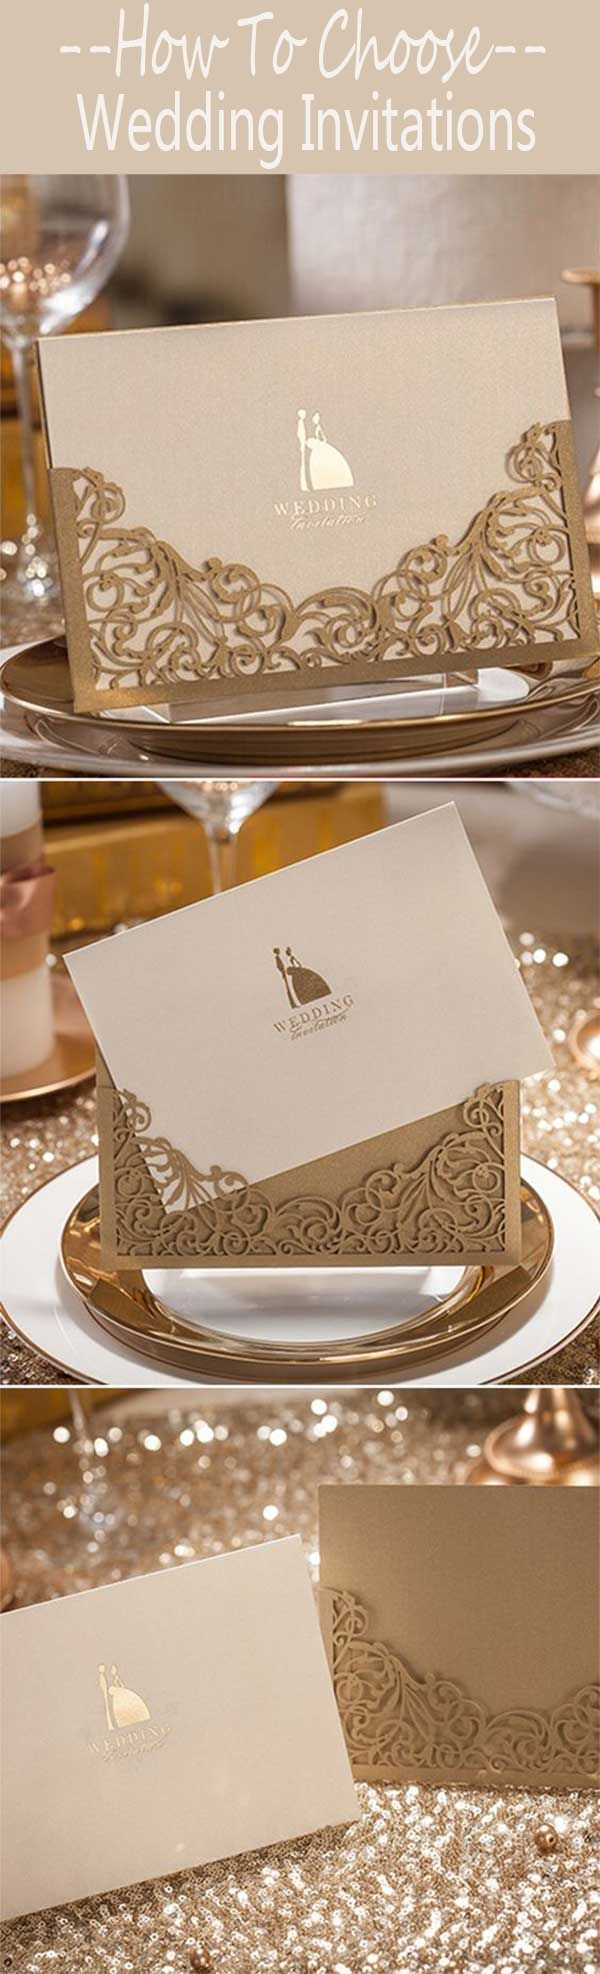 REAL WEDDING ACCESSORIES: HOW TO CHOOSE YOUR PERFECT WEDDING INVITATIONS? - Wedding Invites Paper  cheap wedding invitations/gold laser cut wedding invitations/ rustic fall wedding invitations/ lace winter wedding invitations/